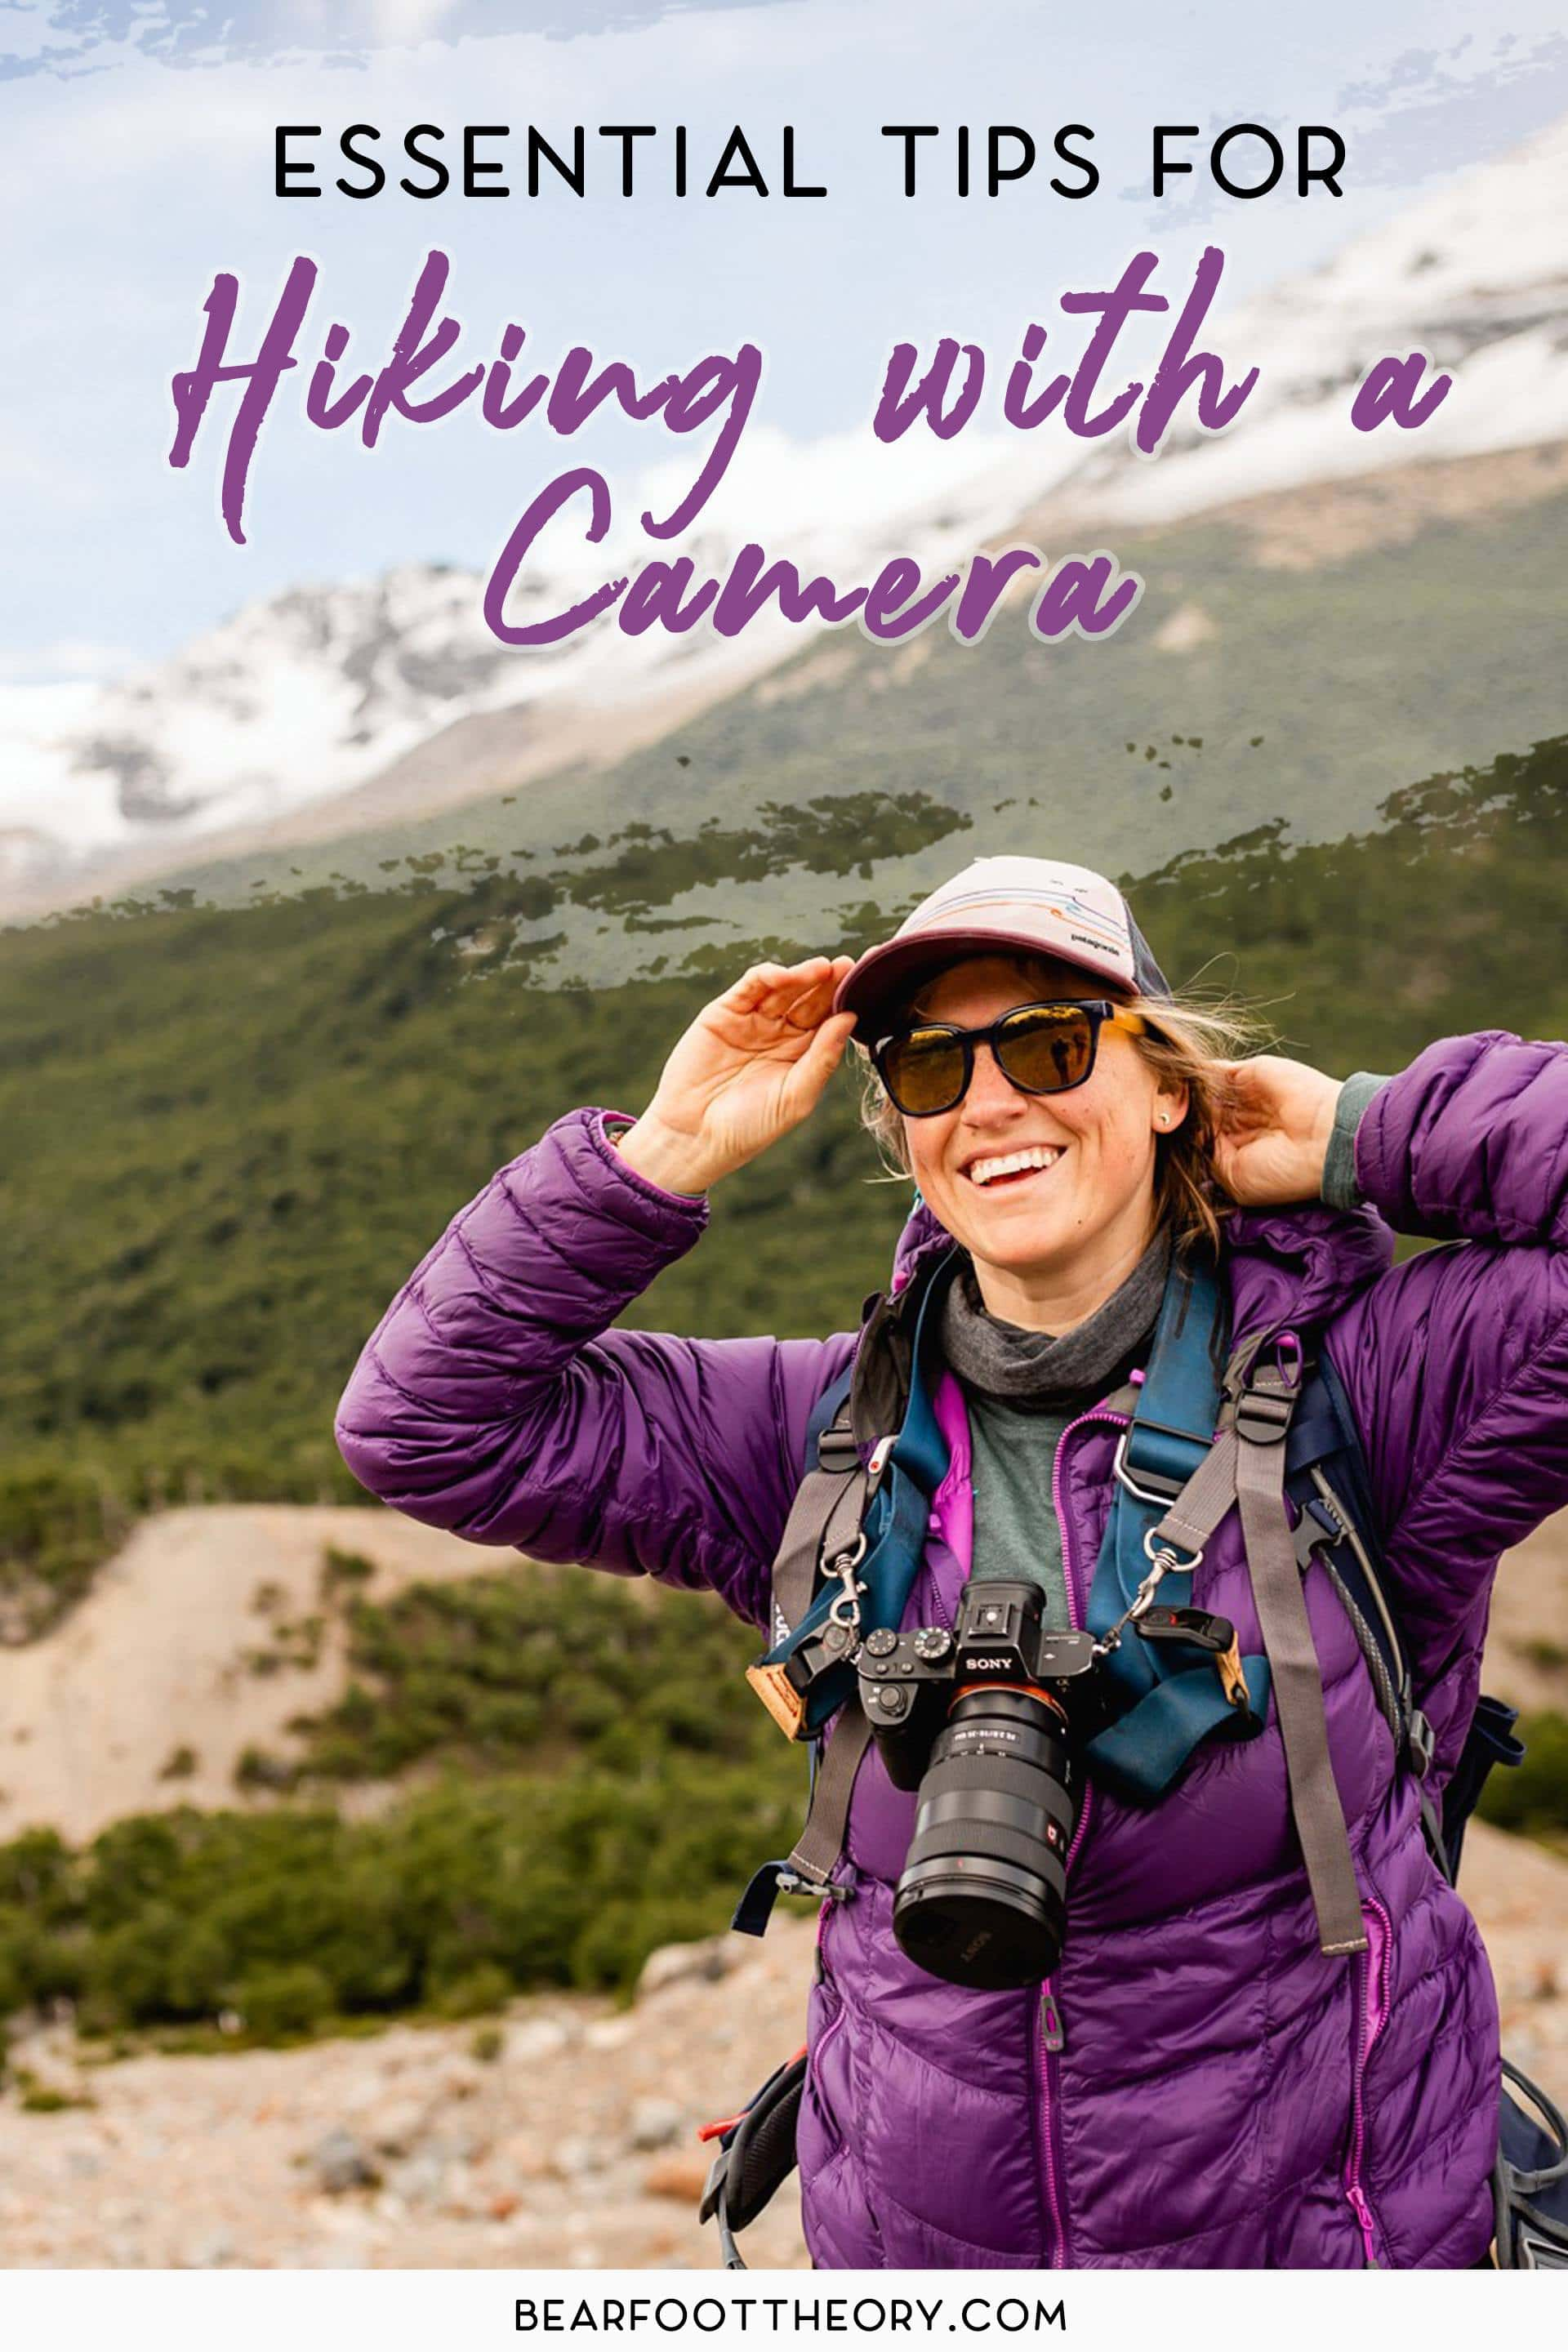 Get essential tips for comfortably carrying & hiking with a camera, along with gear to protect your camera from getting damaged on the trail.